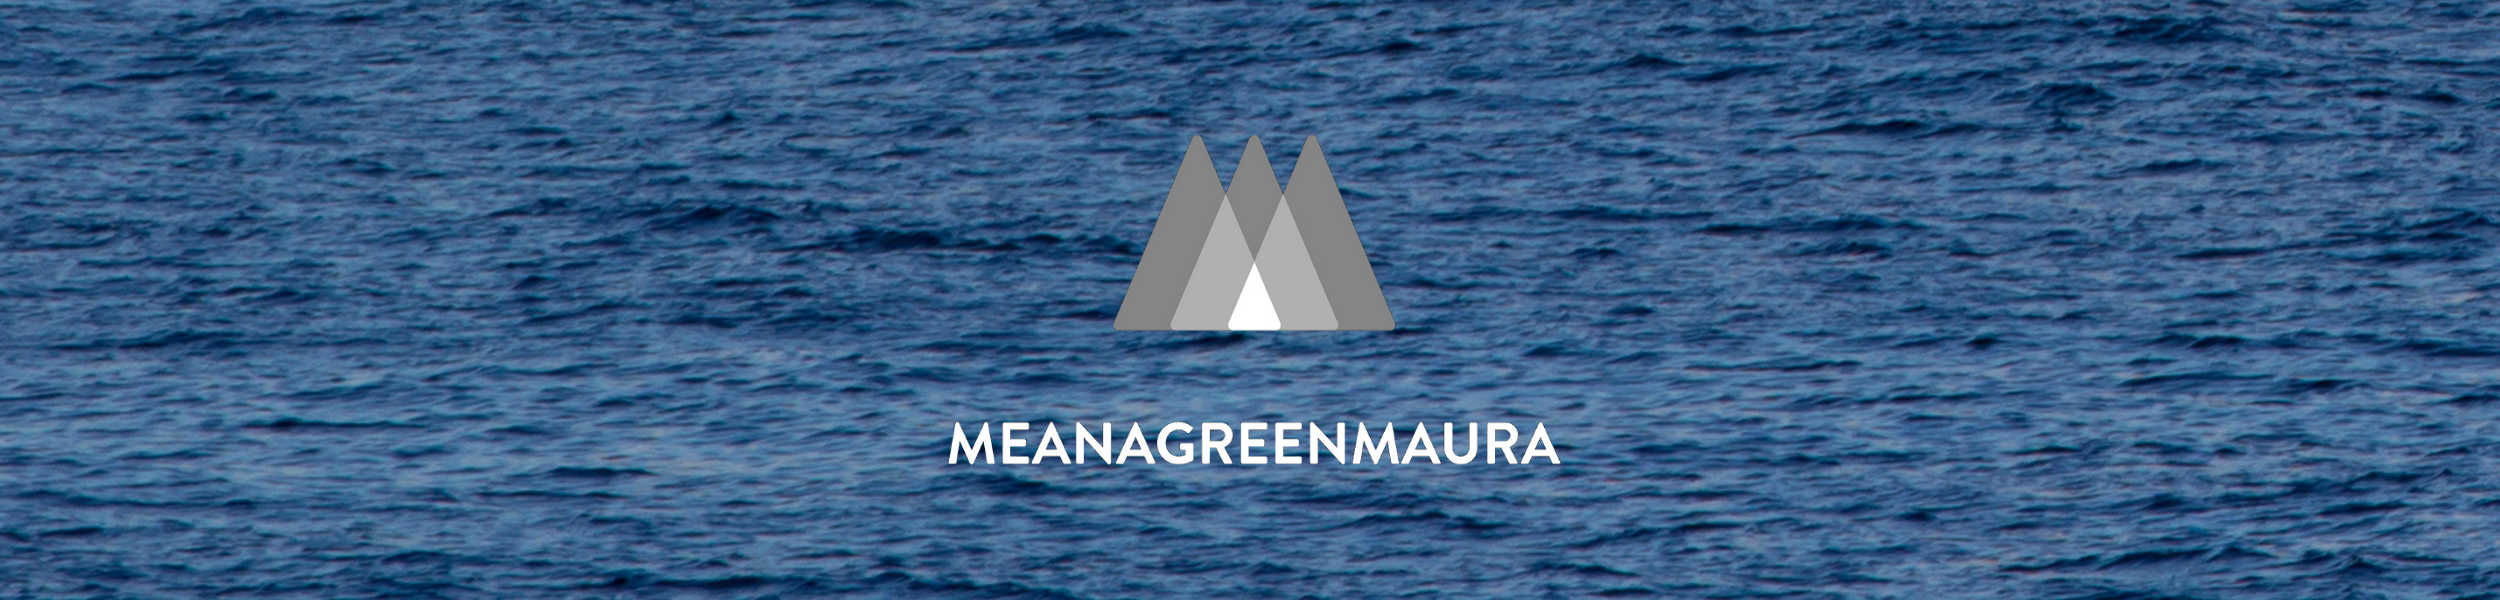 MeanaGreenMaura